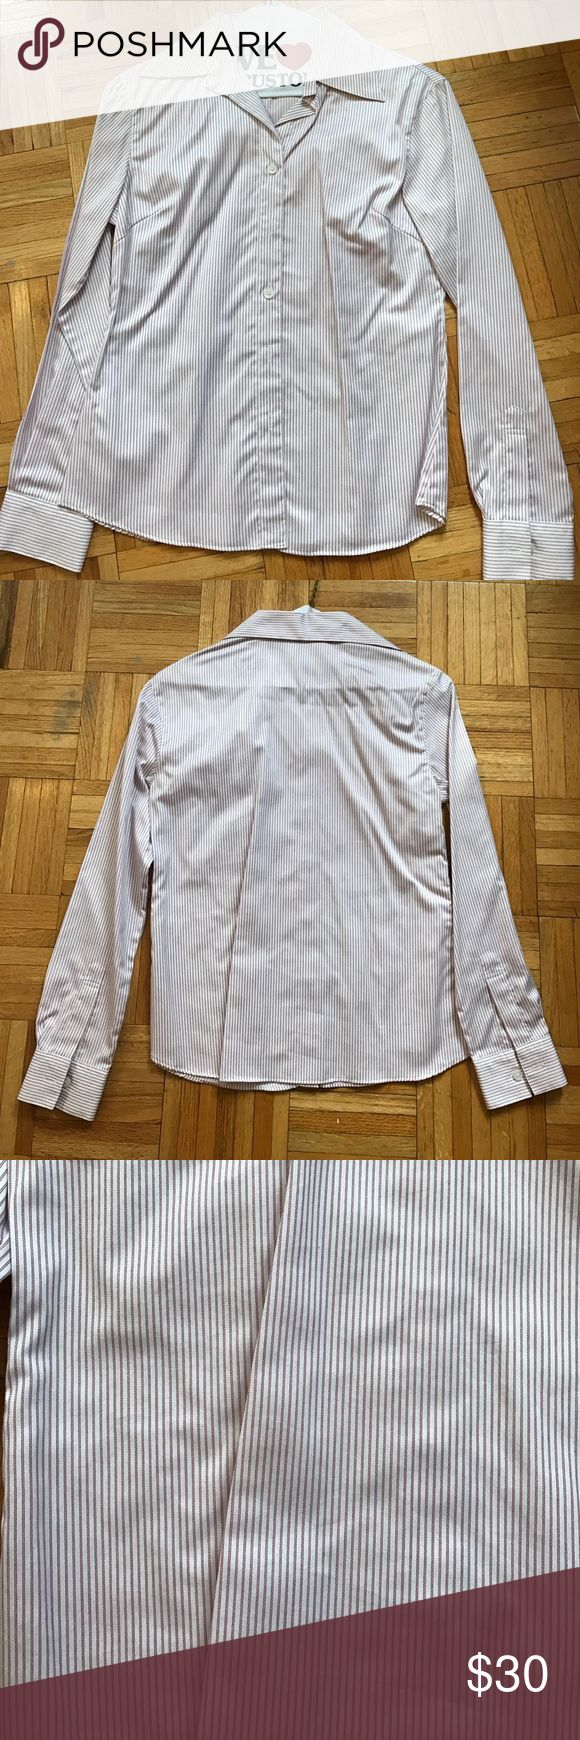 """Petite Women's Custom Tailored Dress Shirt High quality - condition like new; 34B chest, 21"""" shirt and sleeve length Tops Button Down Shirts"""